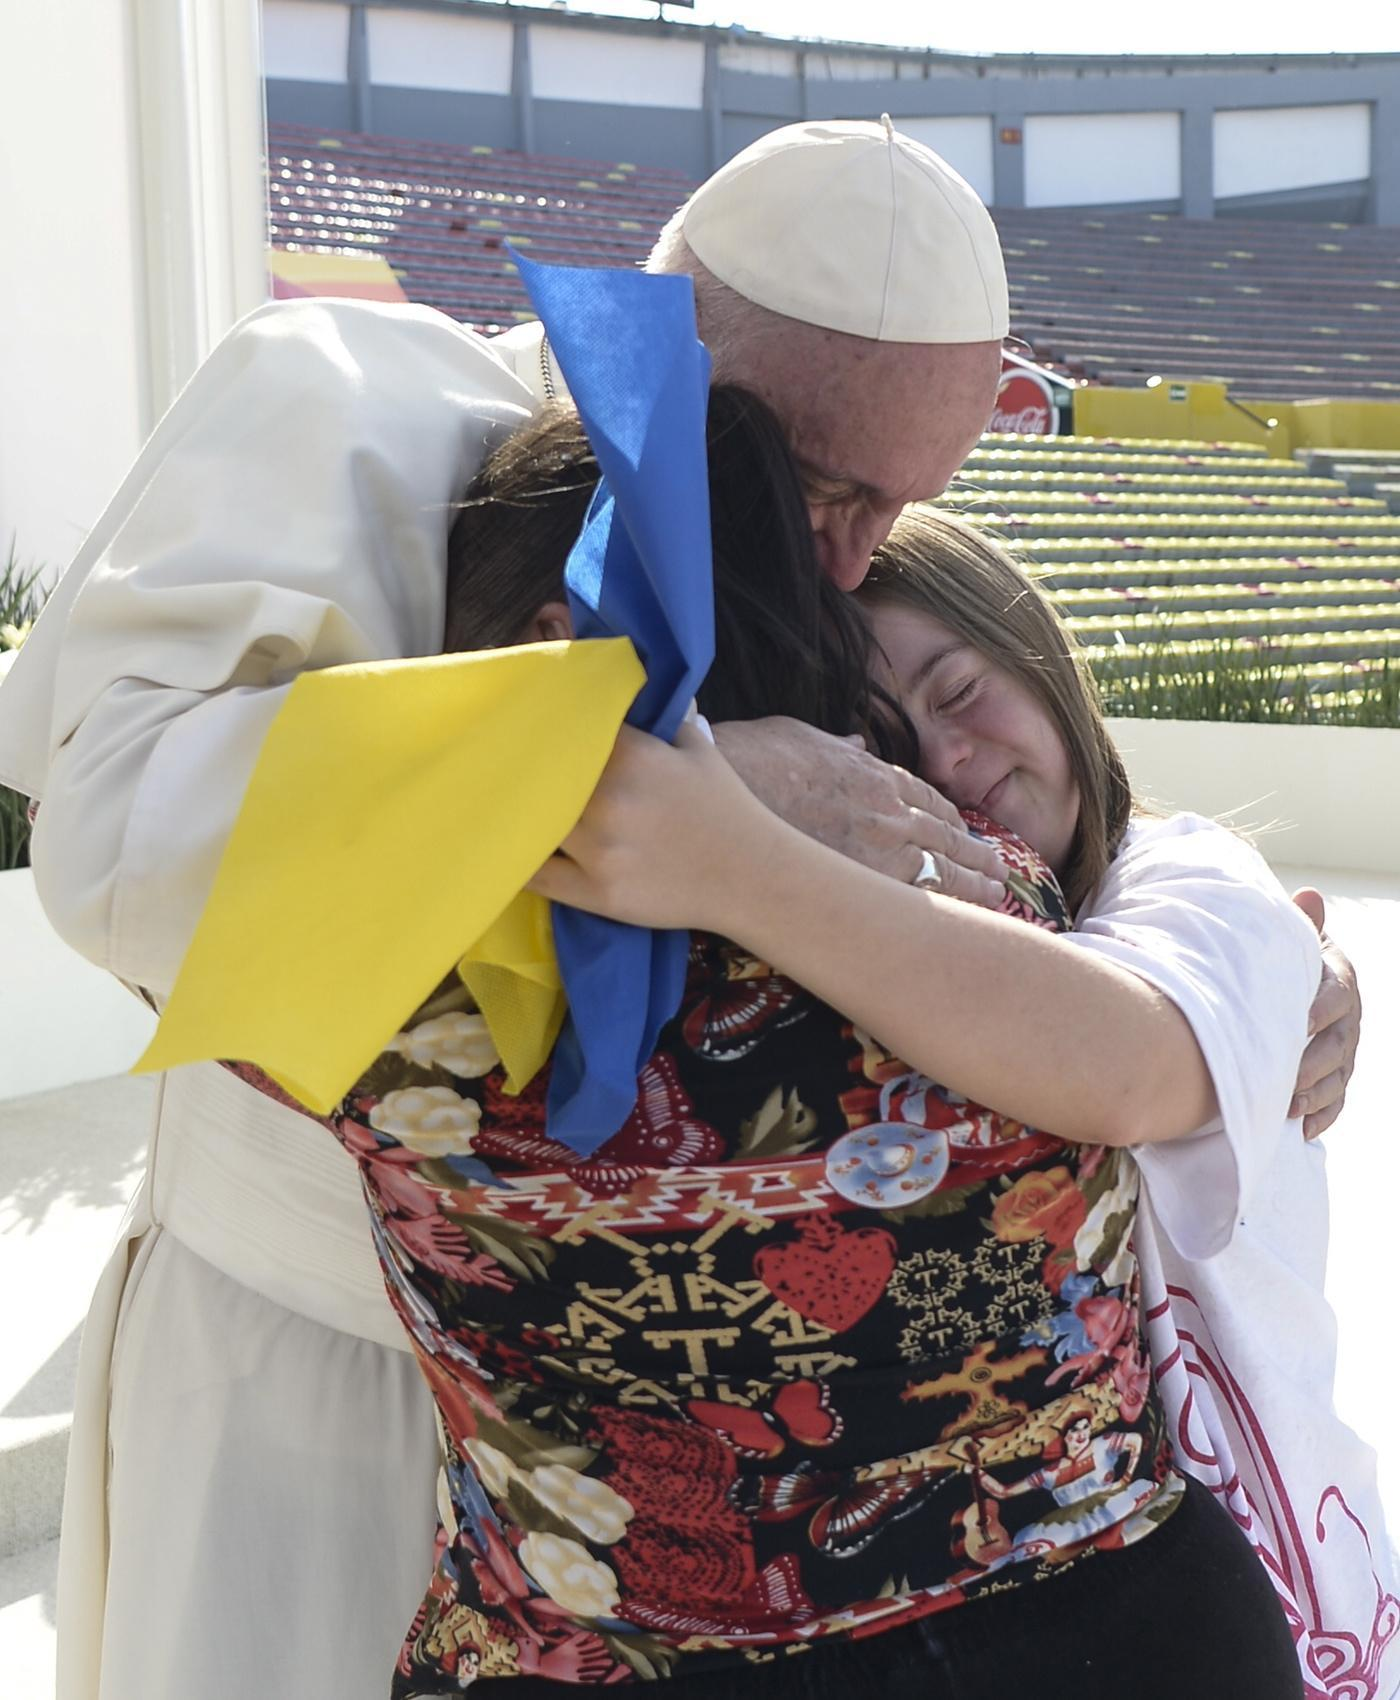 Pope Francis embraces women during a meeting with young people at Jose Maria Morelos Pavon Stadium in Morelia, Mexico, Feb. 16. (CNS photo/L'Osservatore Romano via EPA)